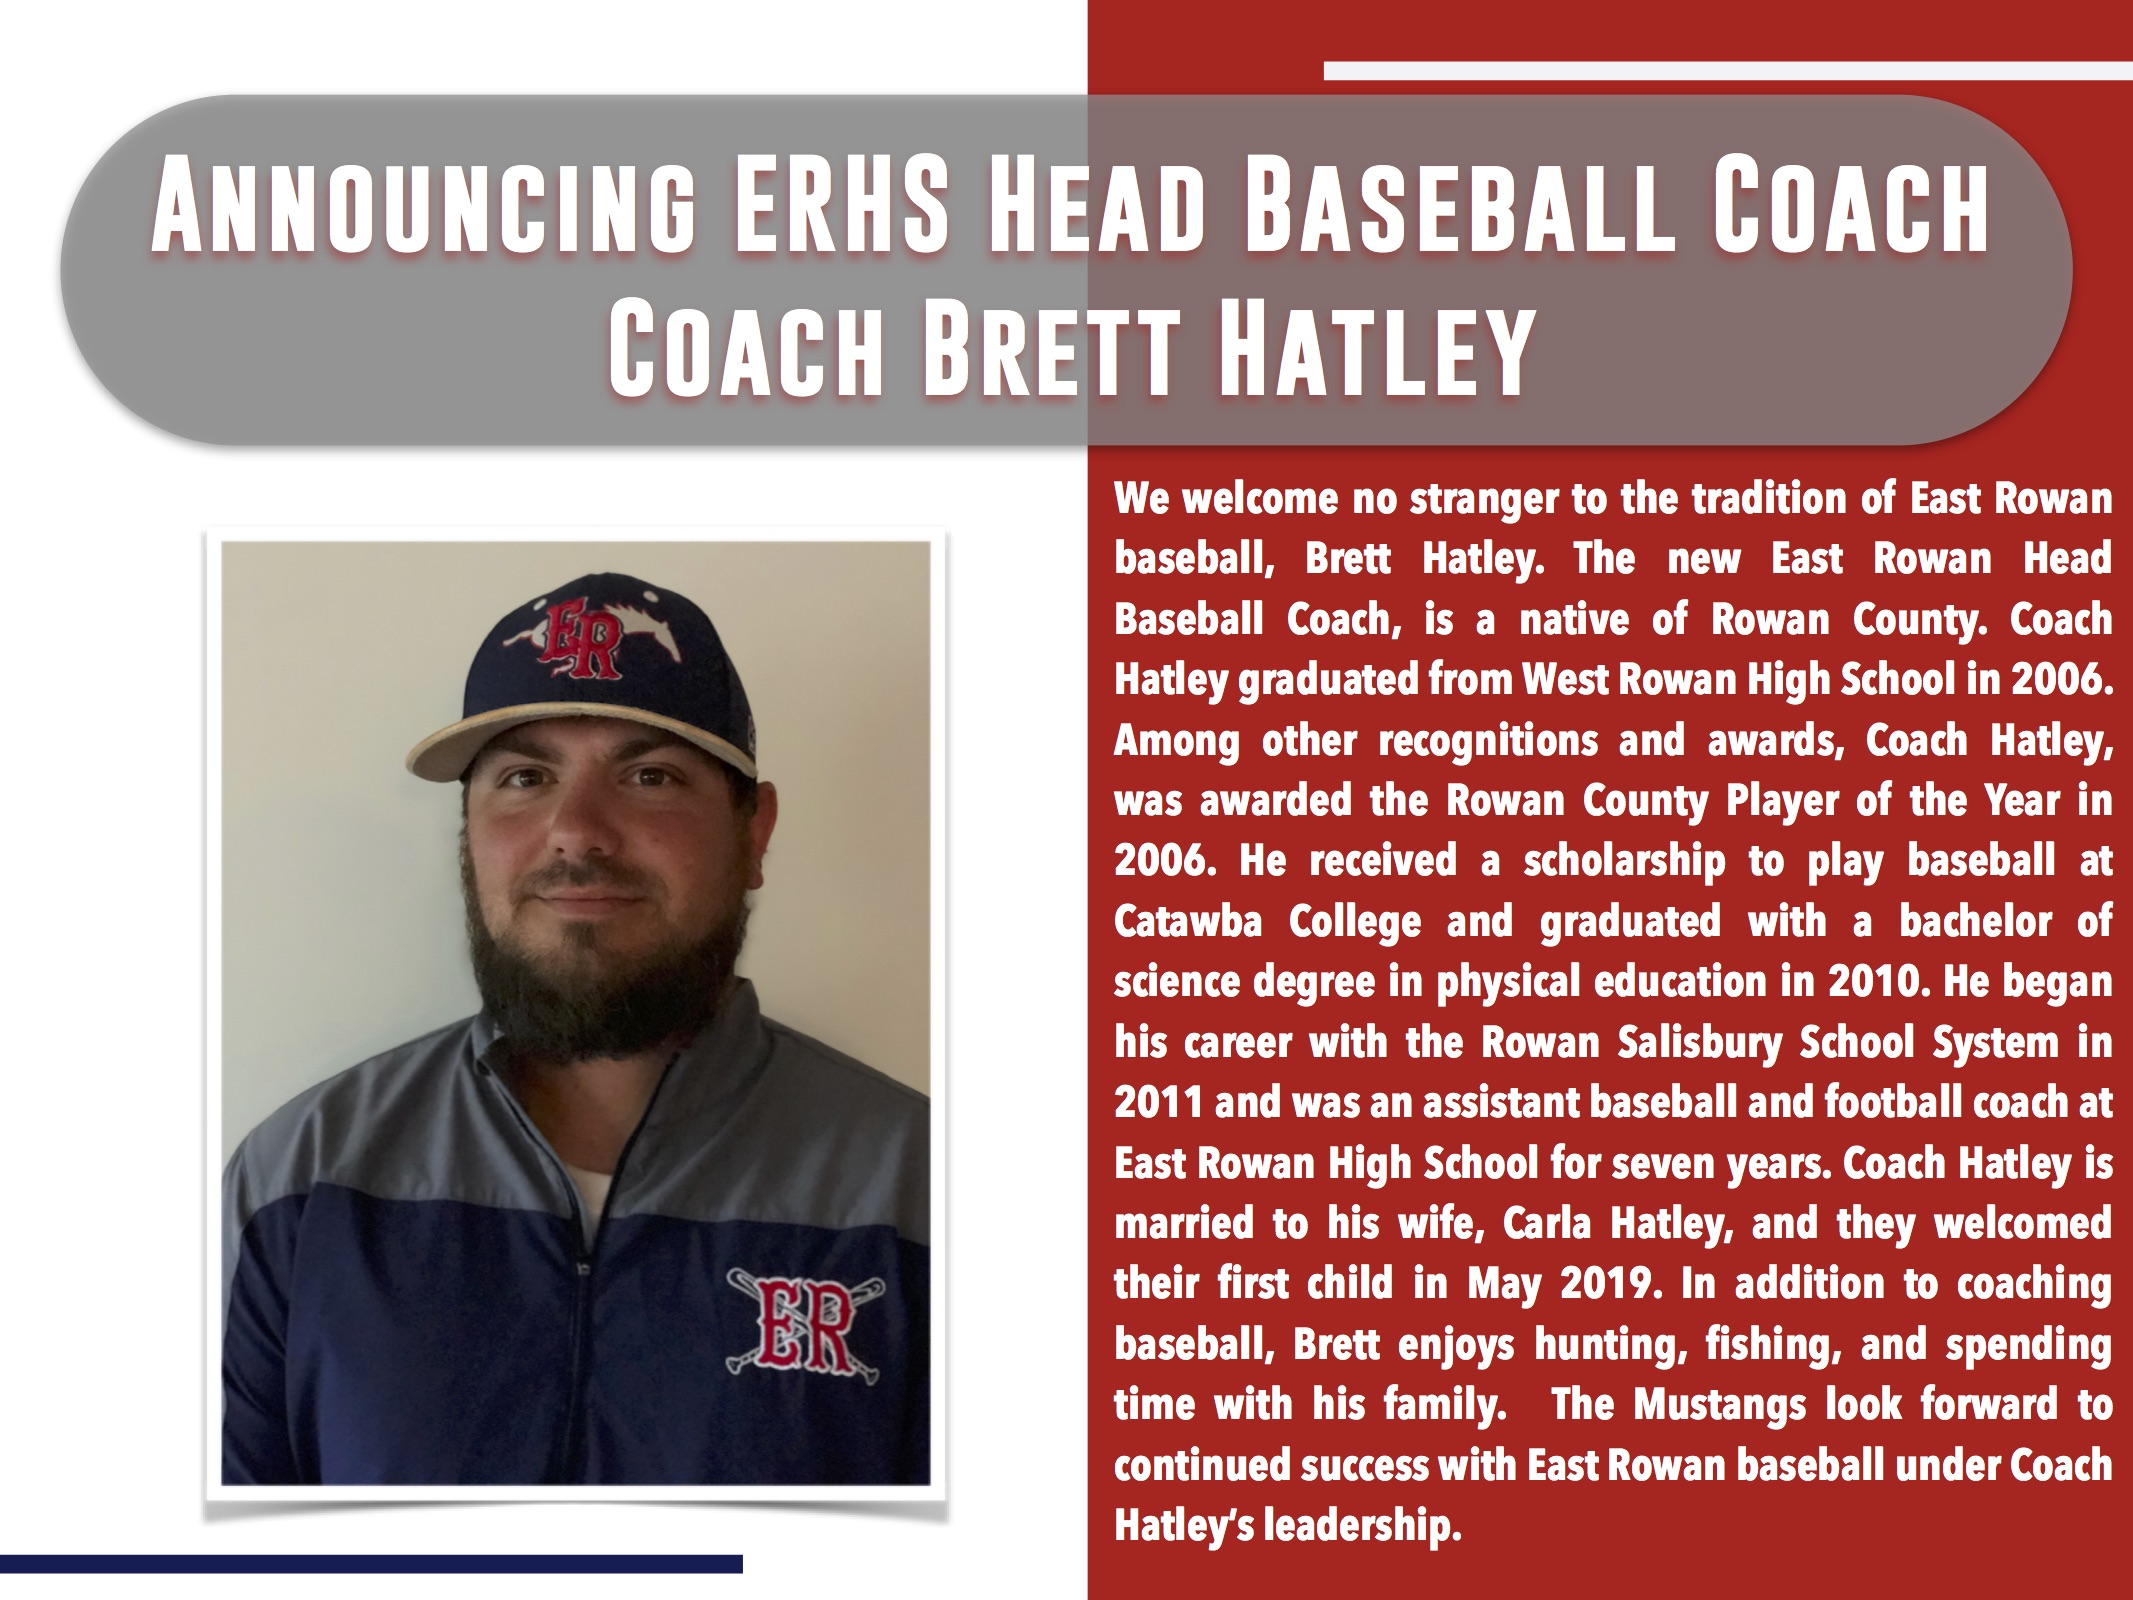 ERHS Head Baseball Coach